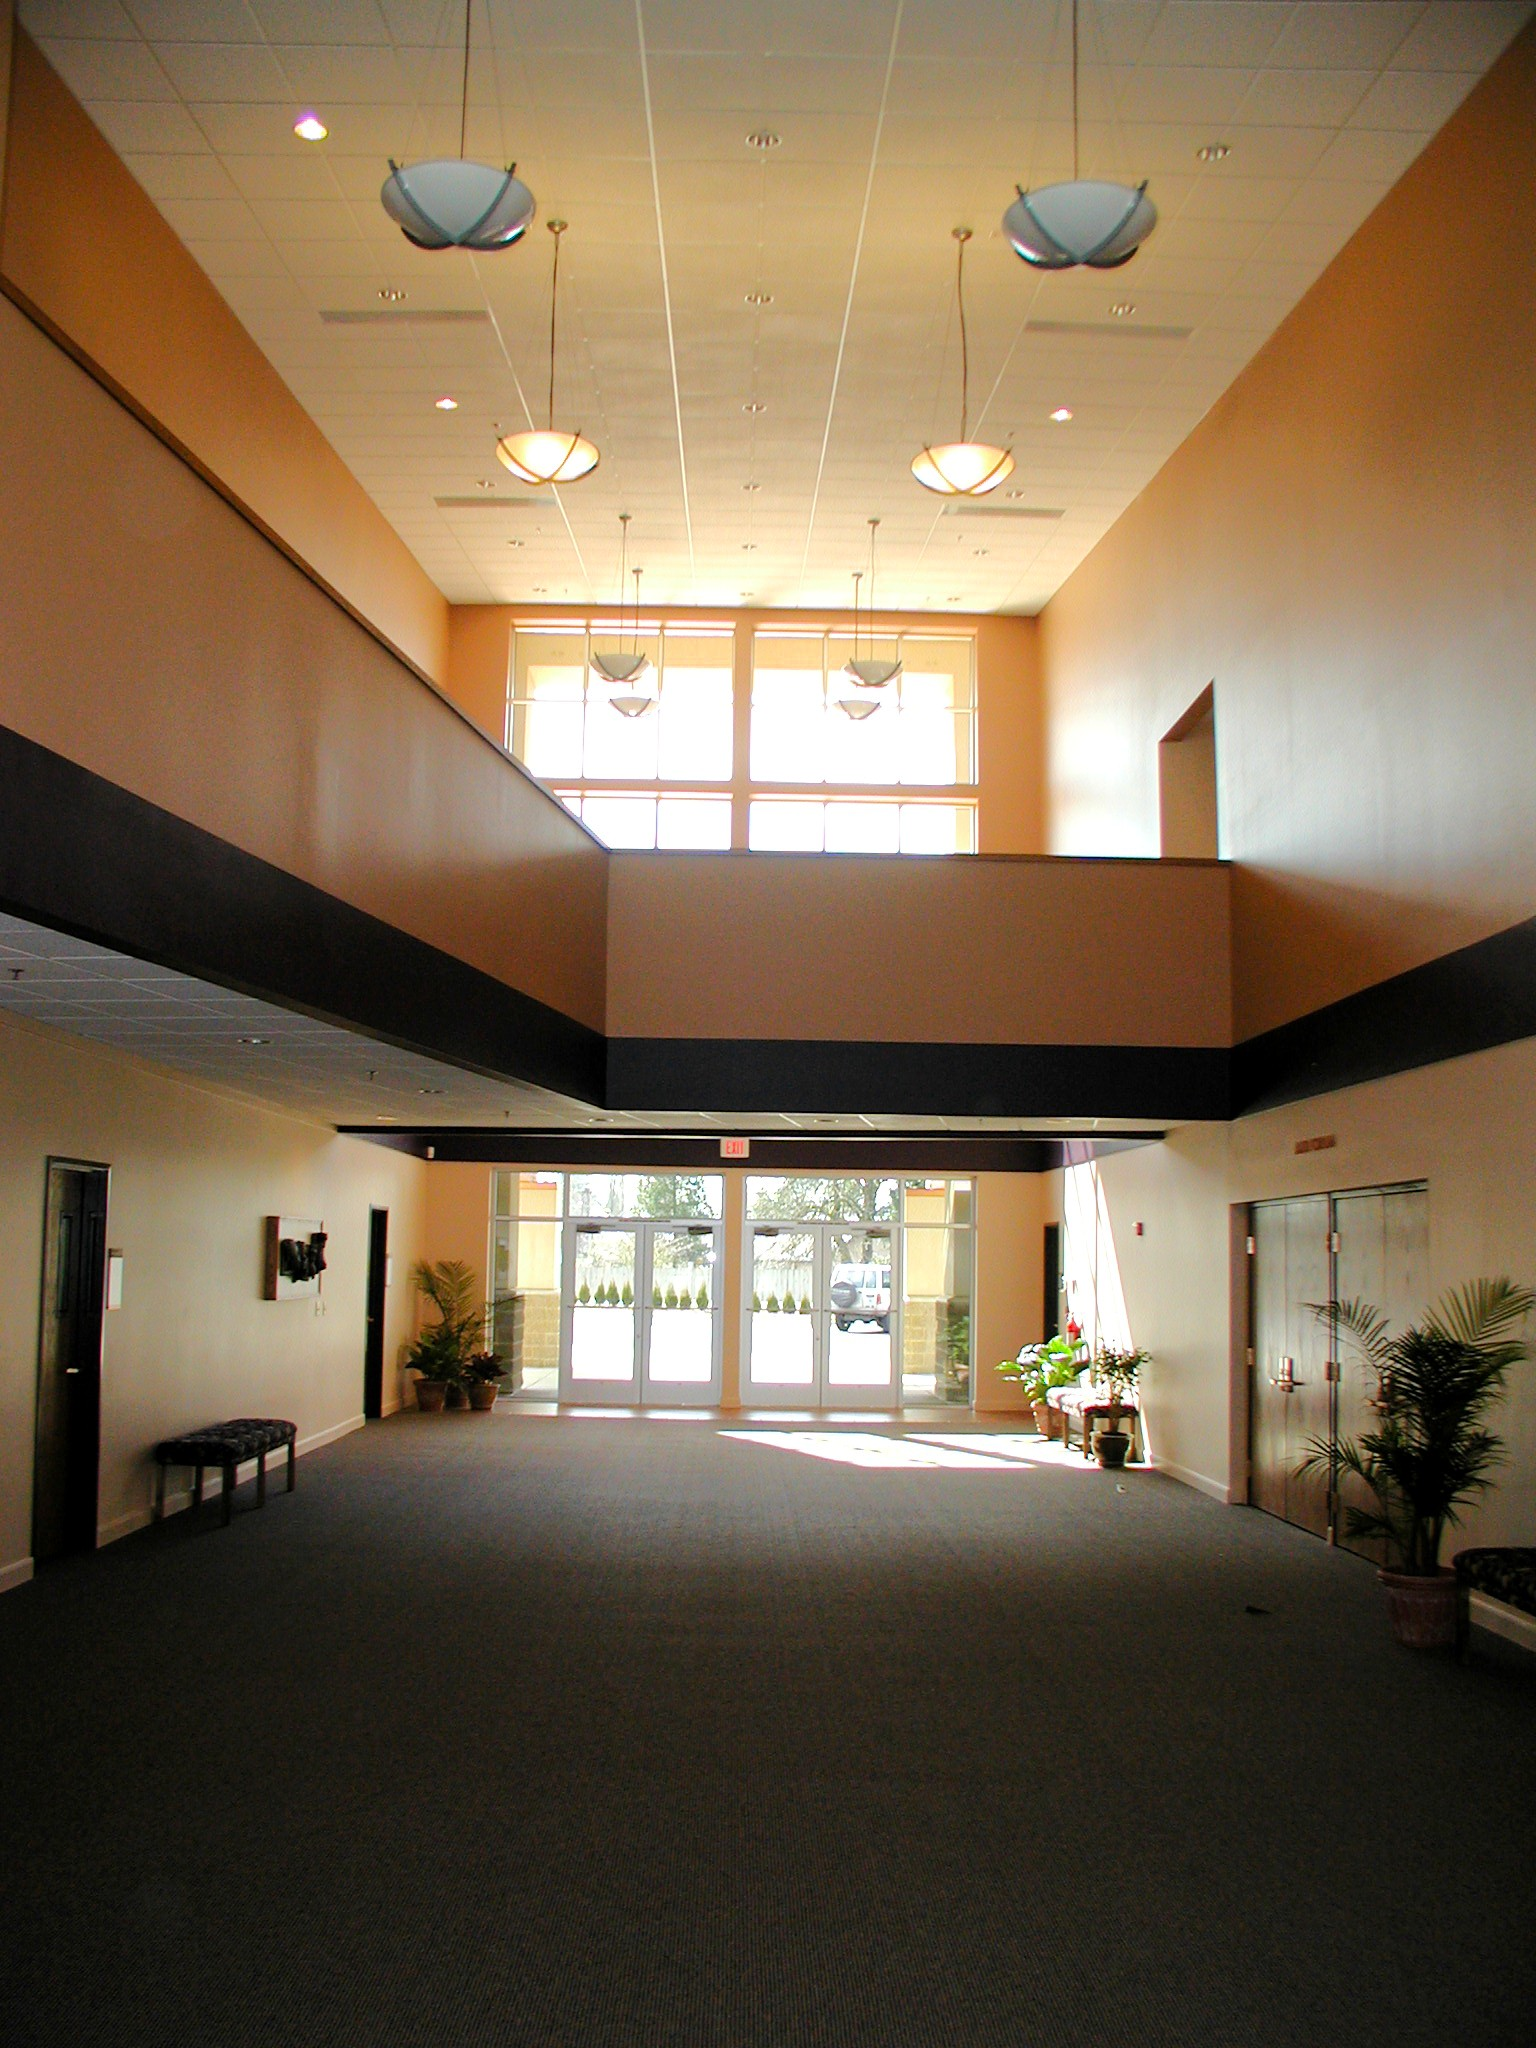 Westside Christian Church Main Lobby Entry.JPG